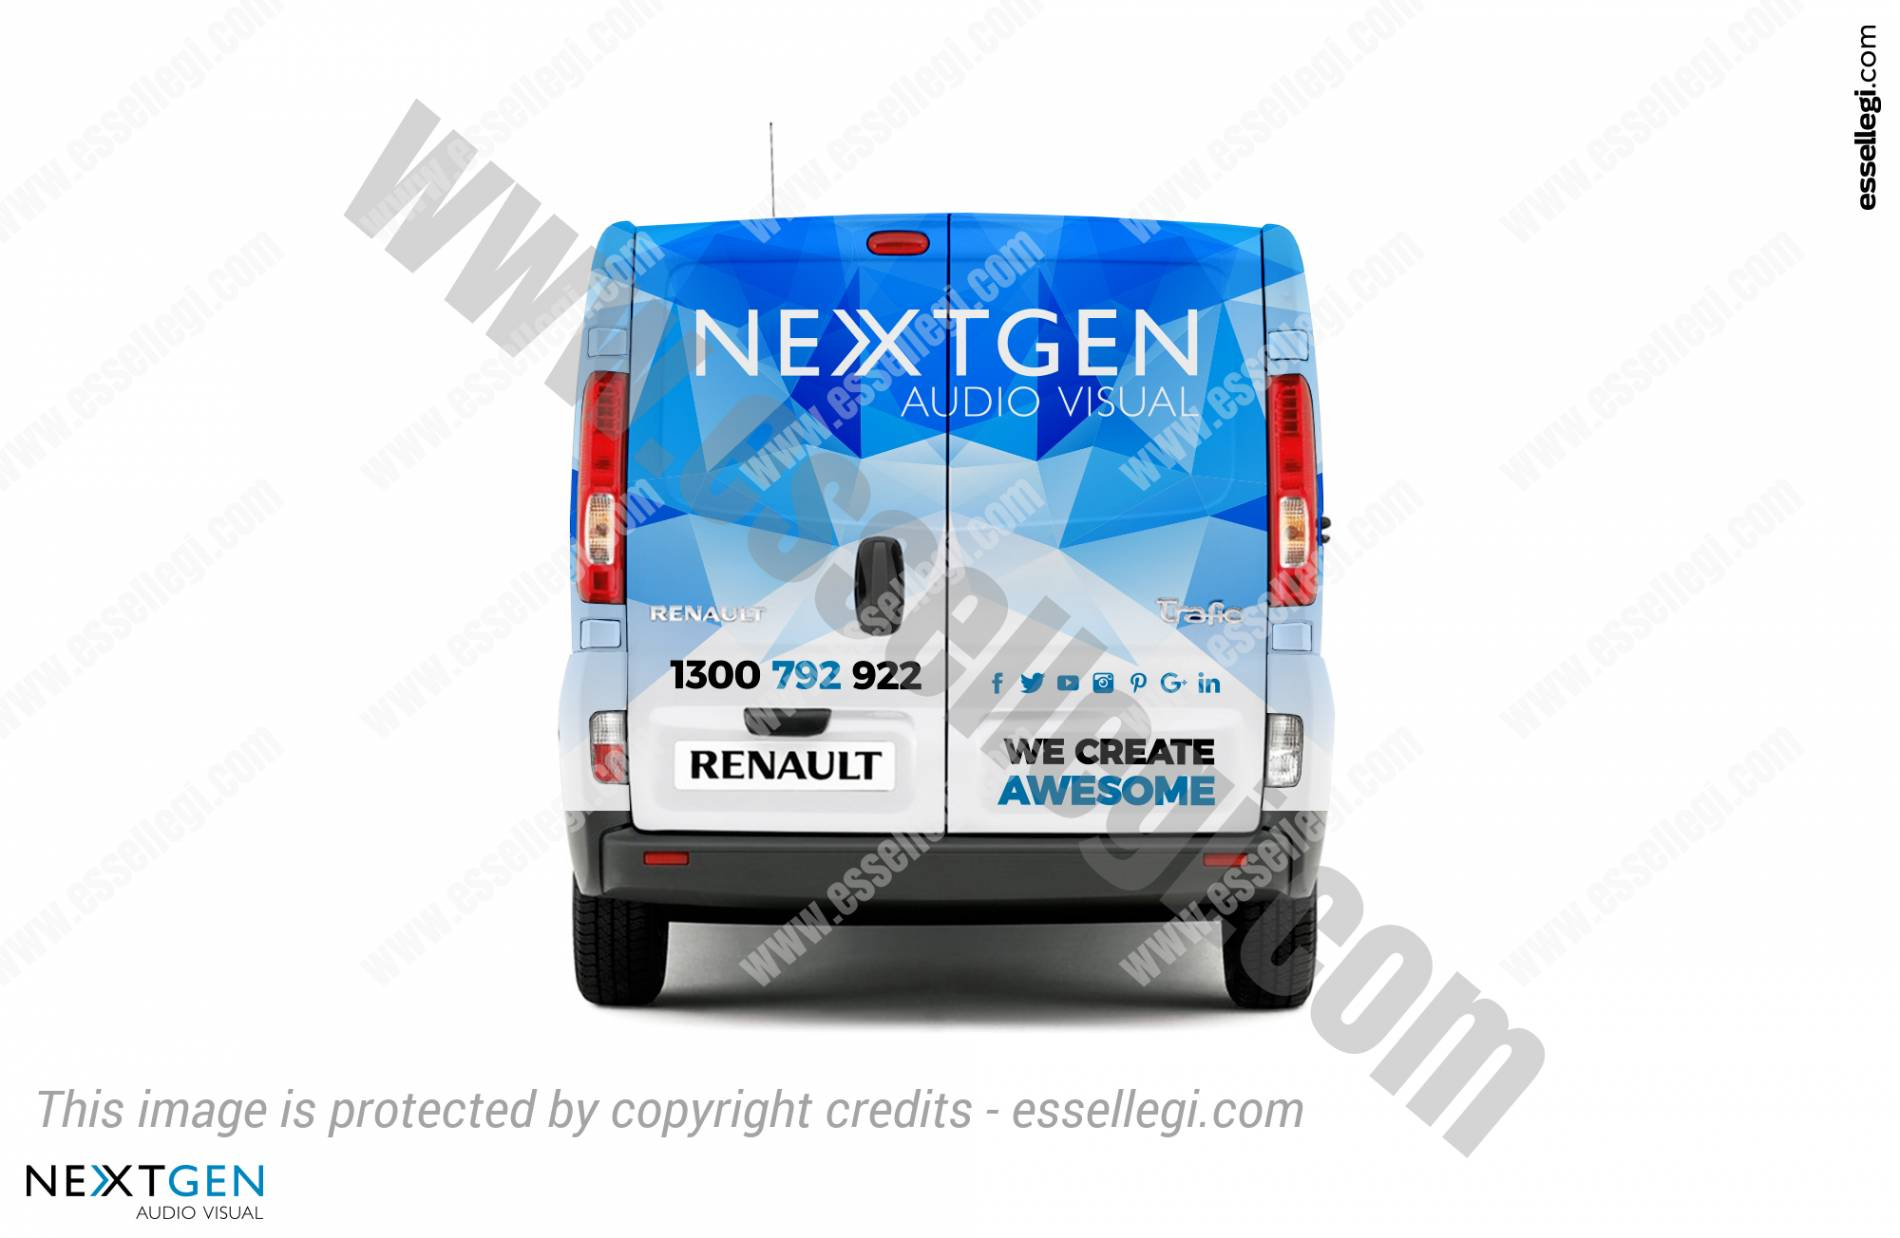 Renault Trafic | Van Wrap Design by Essellegi. Van Signs, Van Signage, Van Wrapping, Van Signwriting, Van Wrap Designer, Signs for Van, Van Logo, Van Graphic by Essellegi.